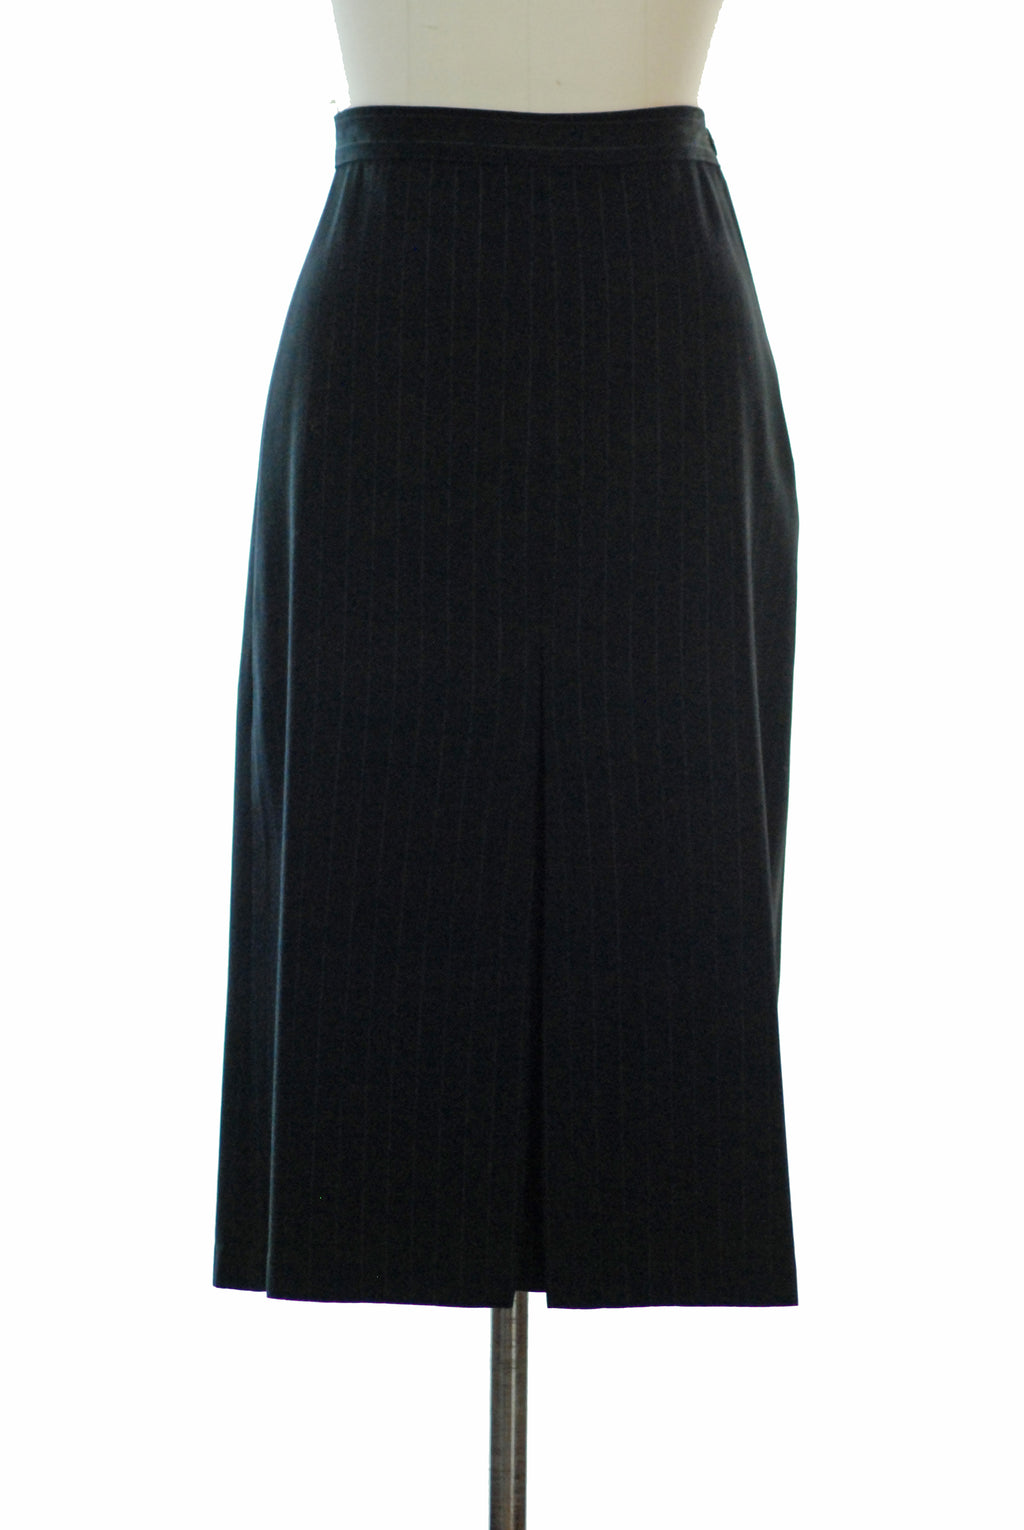 Classic 1940s Pinstripe Wool Skirt with Slight A-line Cut and Center Pleats